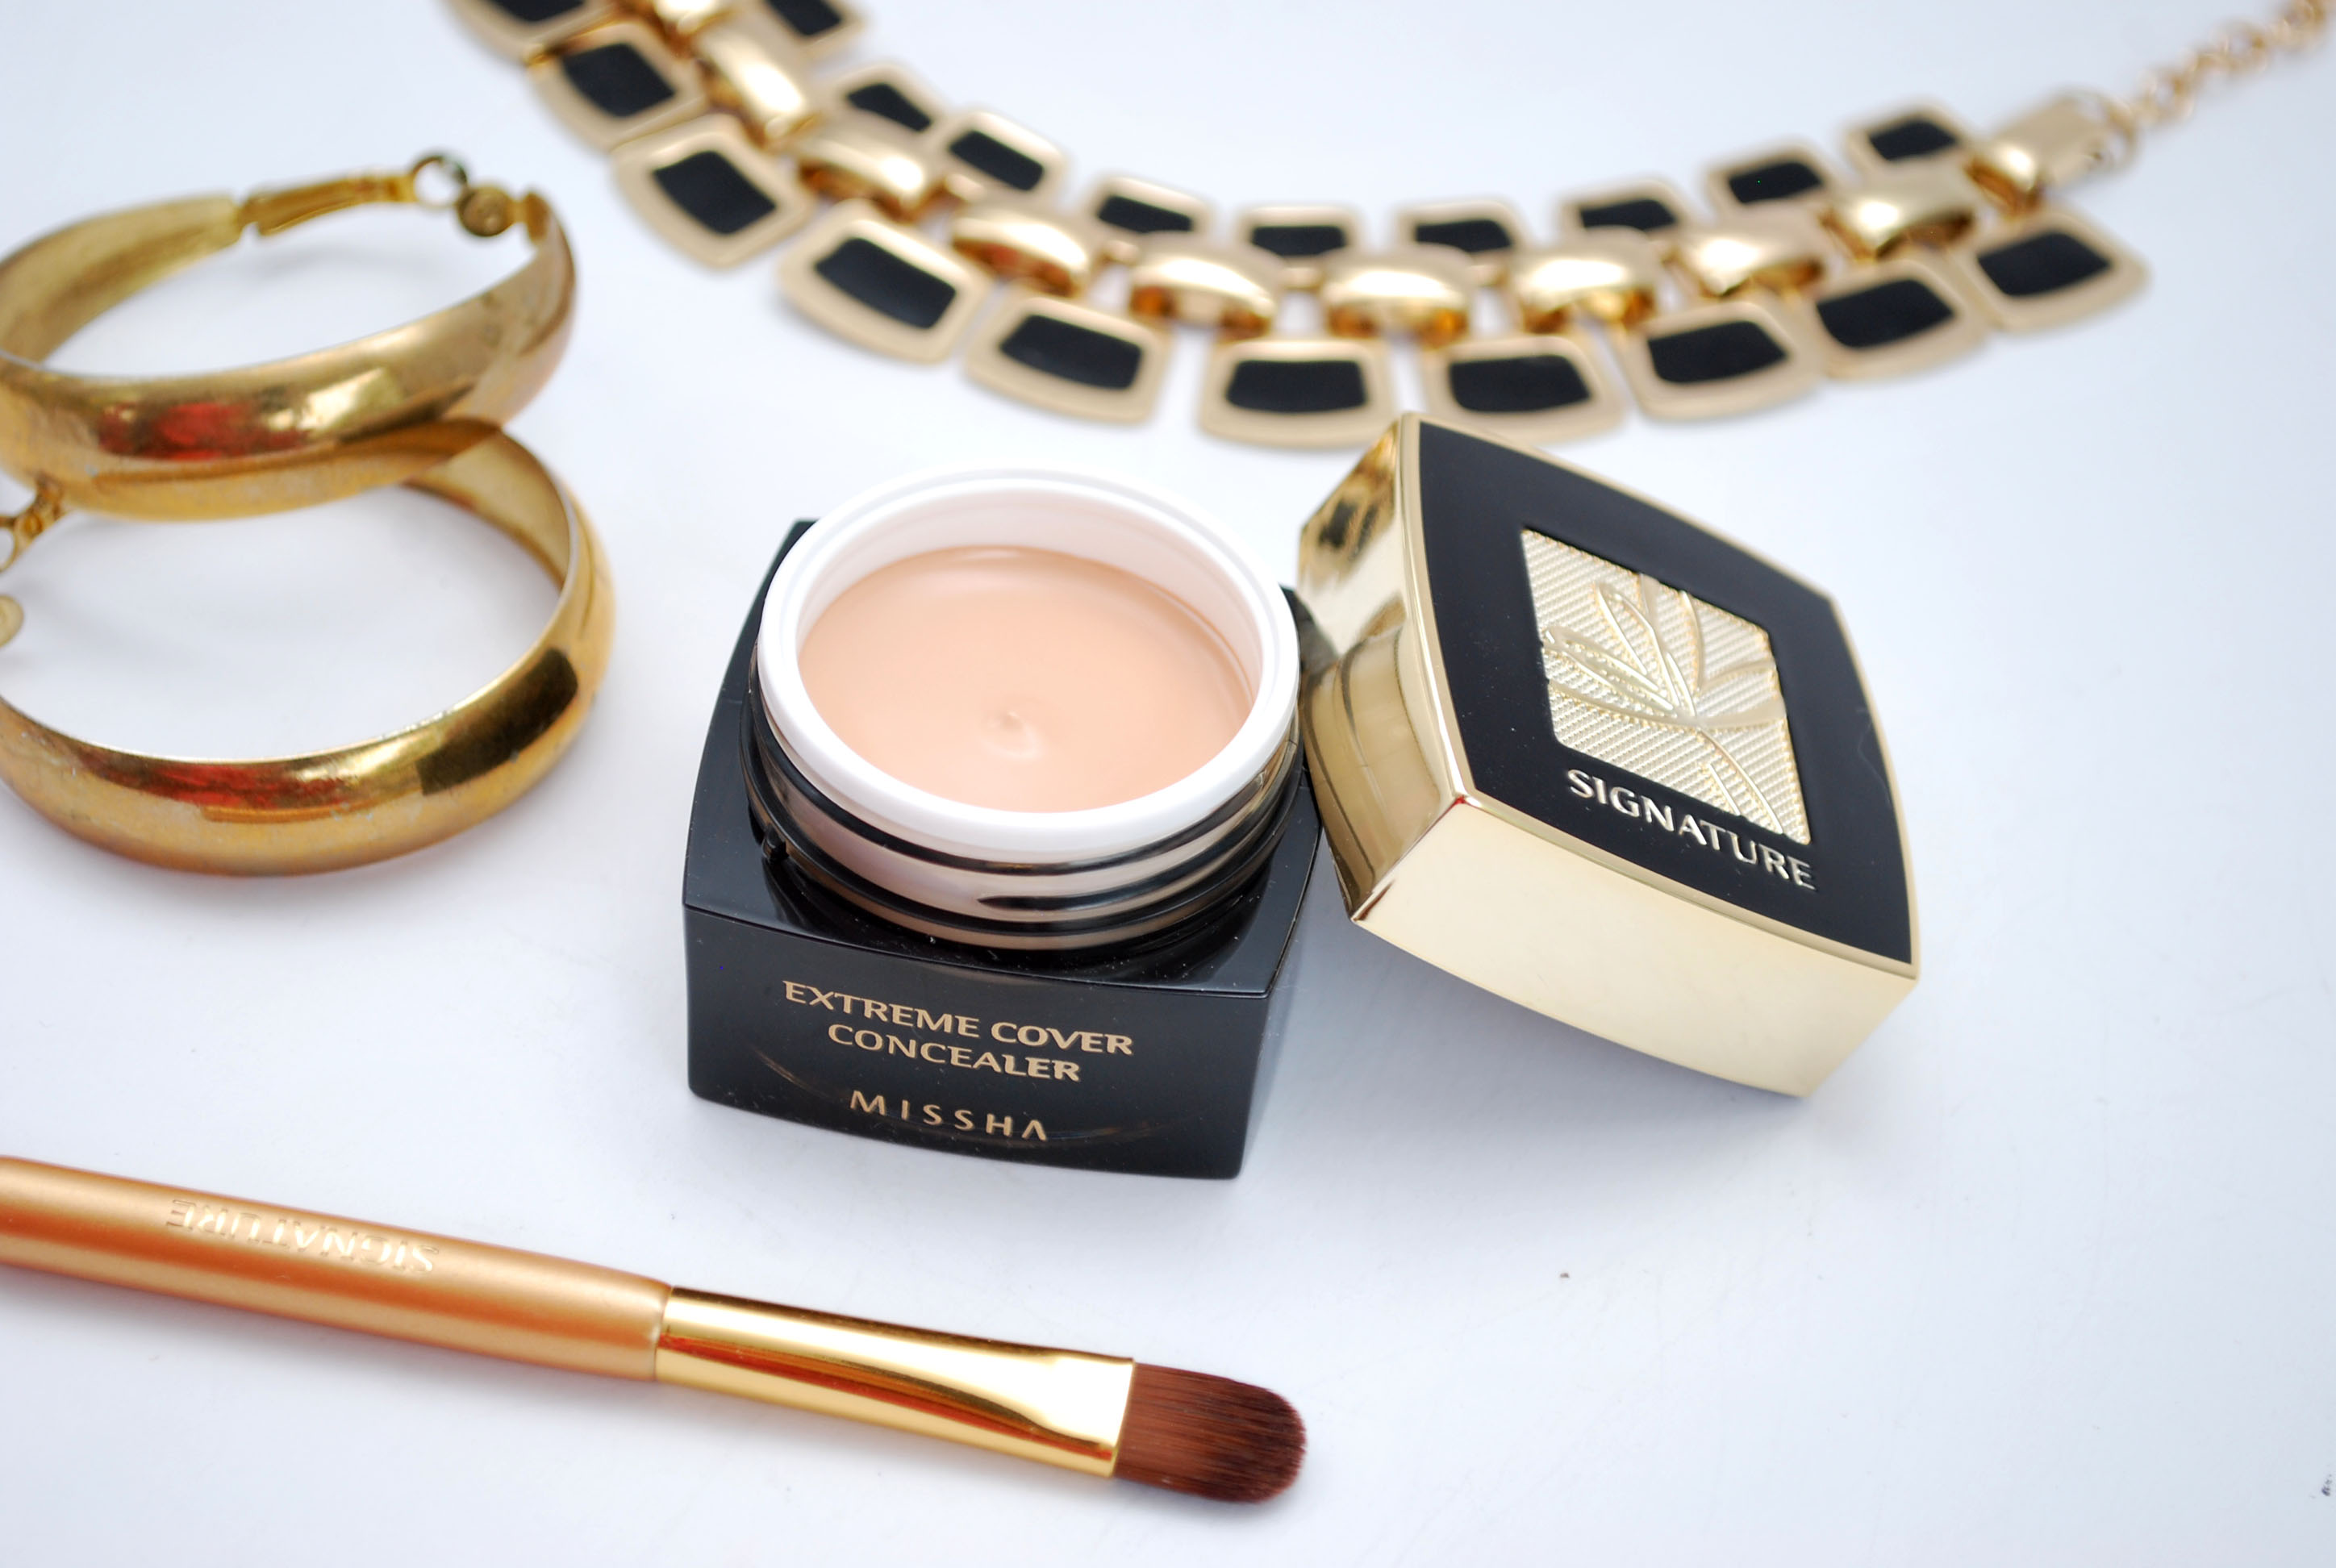 review Missha concealer Missha Signature Extreme Cover Concealer #21 Light Beige